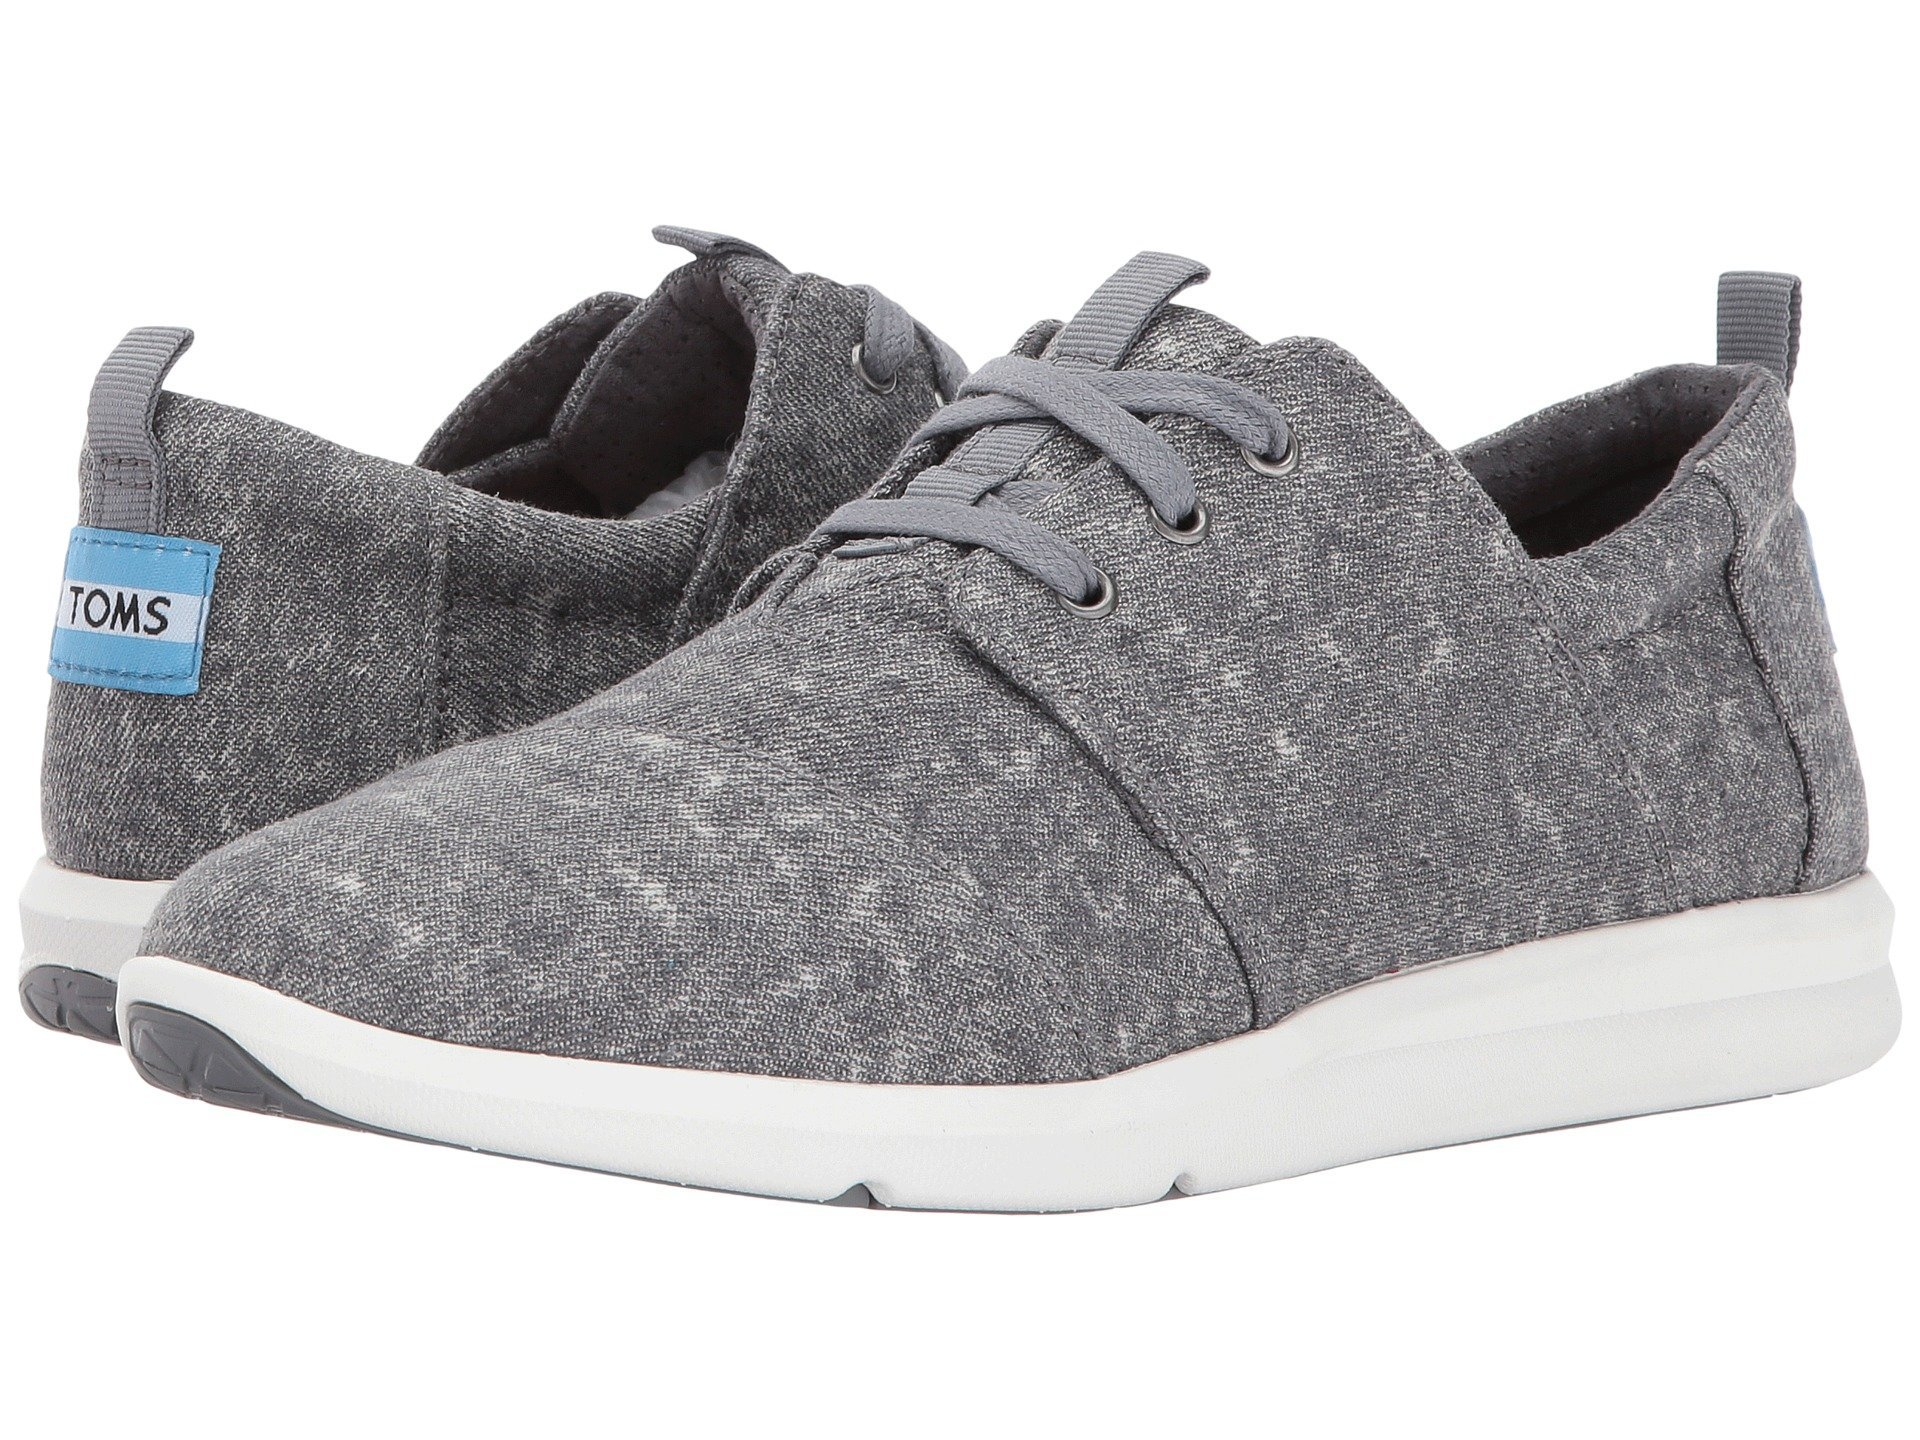 TOMS Women's Cabrillo Natural Heritage Canvas/Textured Twill 8.5 B US